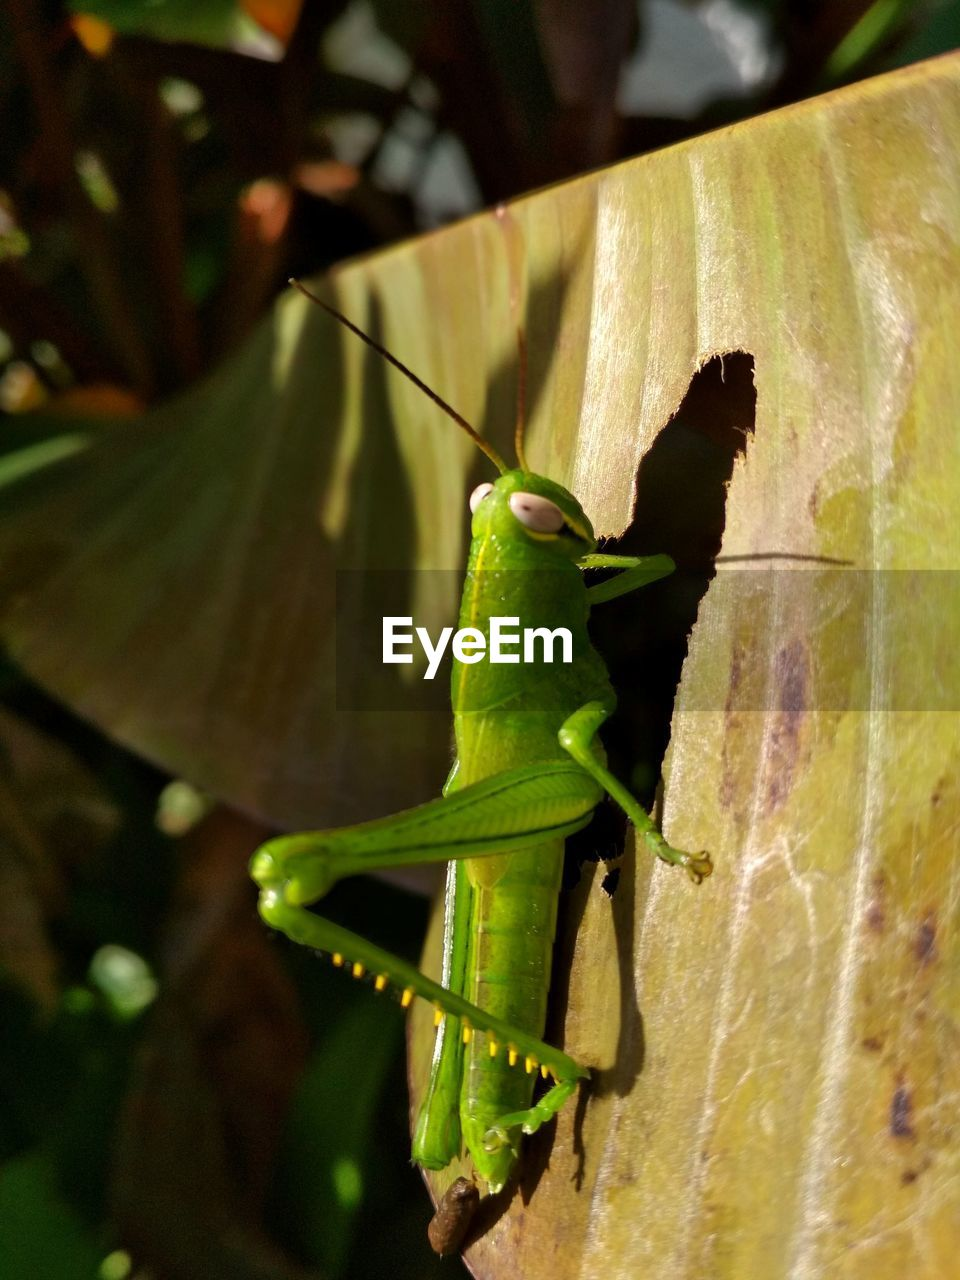 animals in the wild, animal wildlife, animal themes, green color, one animal, animal, insect, close-up, grasshopper, invertebrate, no people, plant part, leaf, day, nature, focus on foreground, outdoors, plant, vertebrate, zoology